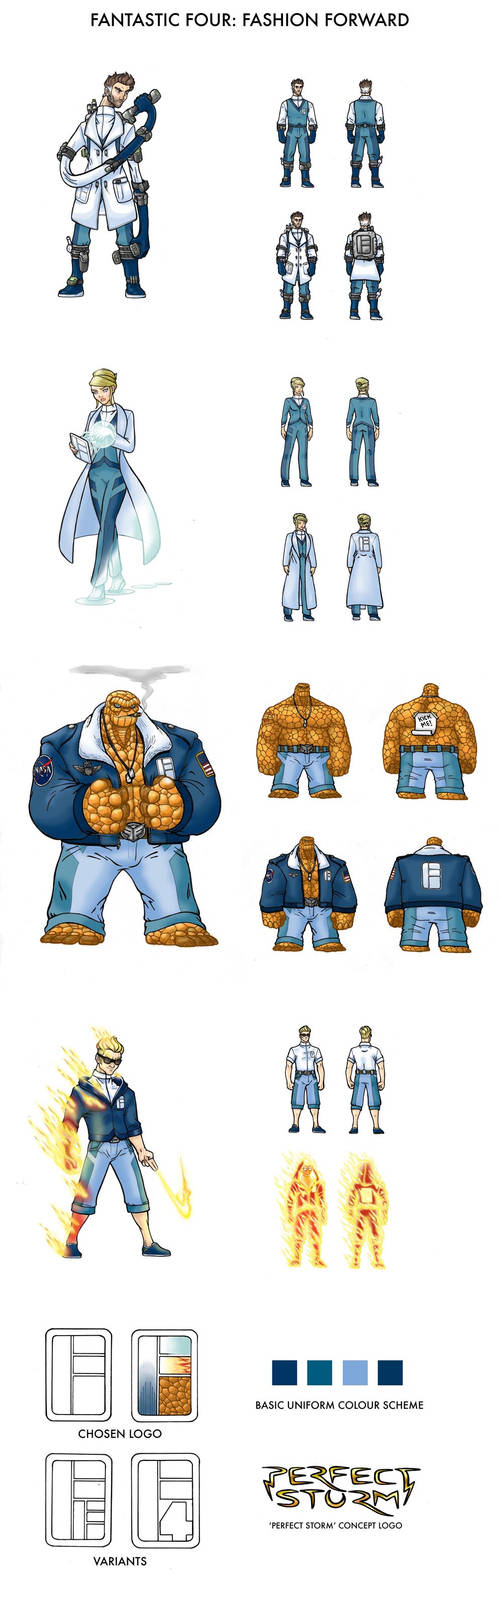 Fantastic Four: Fashion Forward by WhereIDrawTheLine